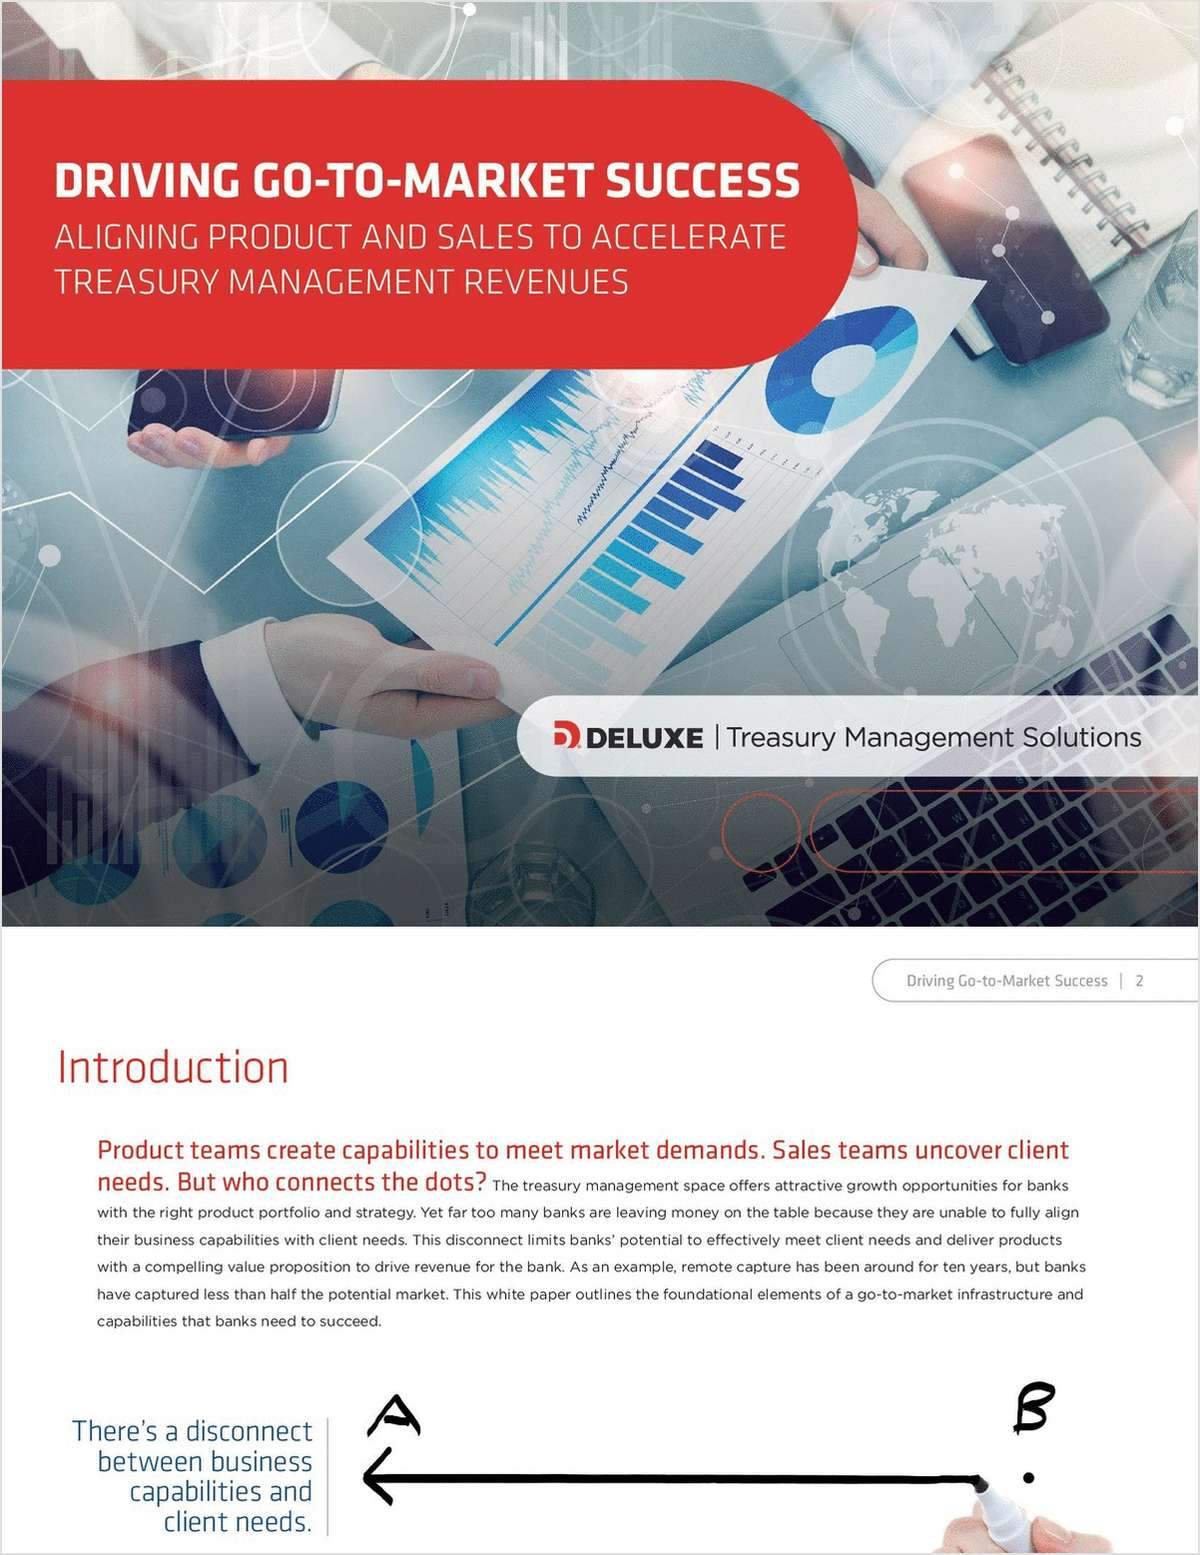 How to Align Product & Sales to Accelerate Treasury Management Revenues